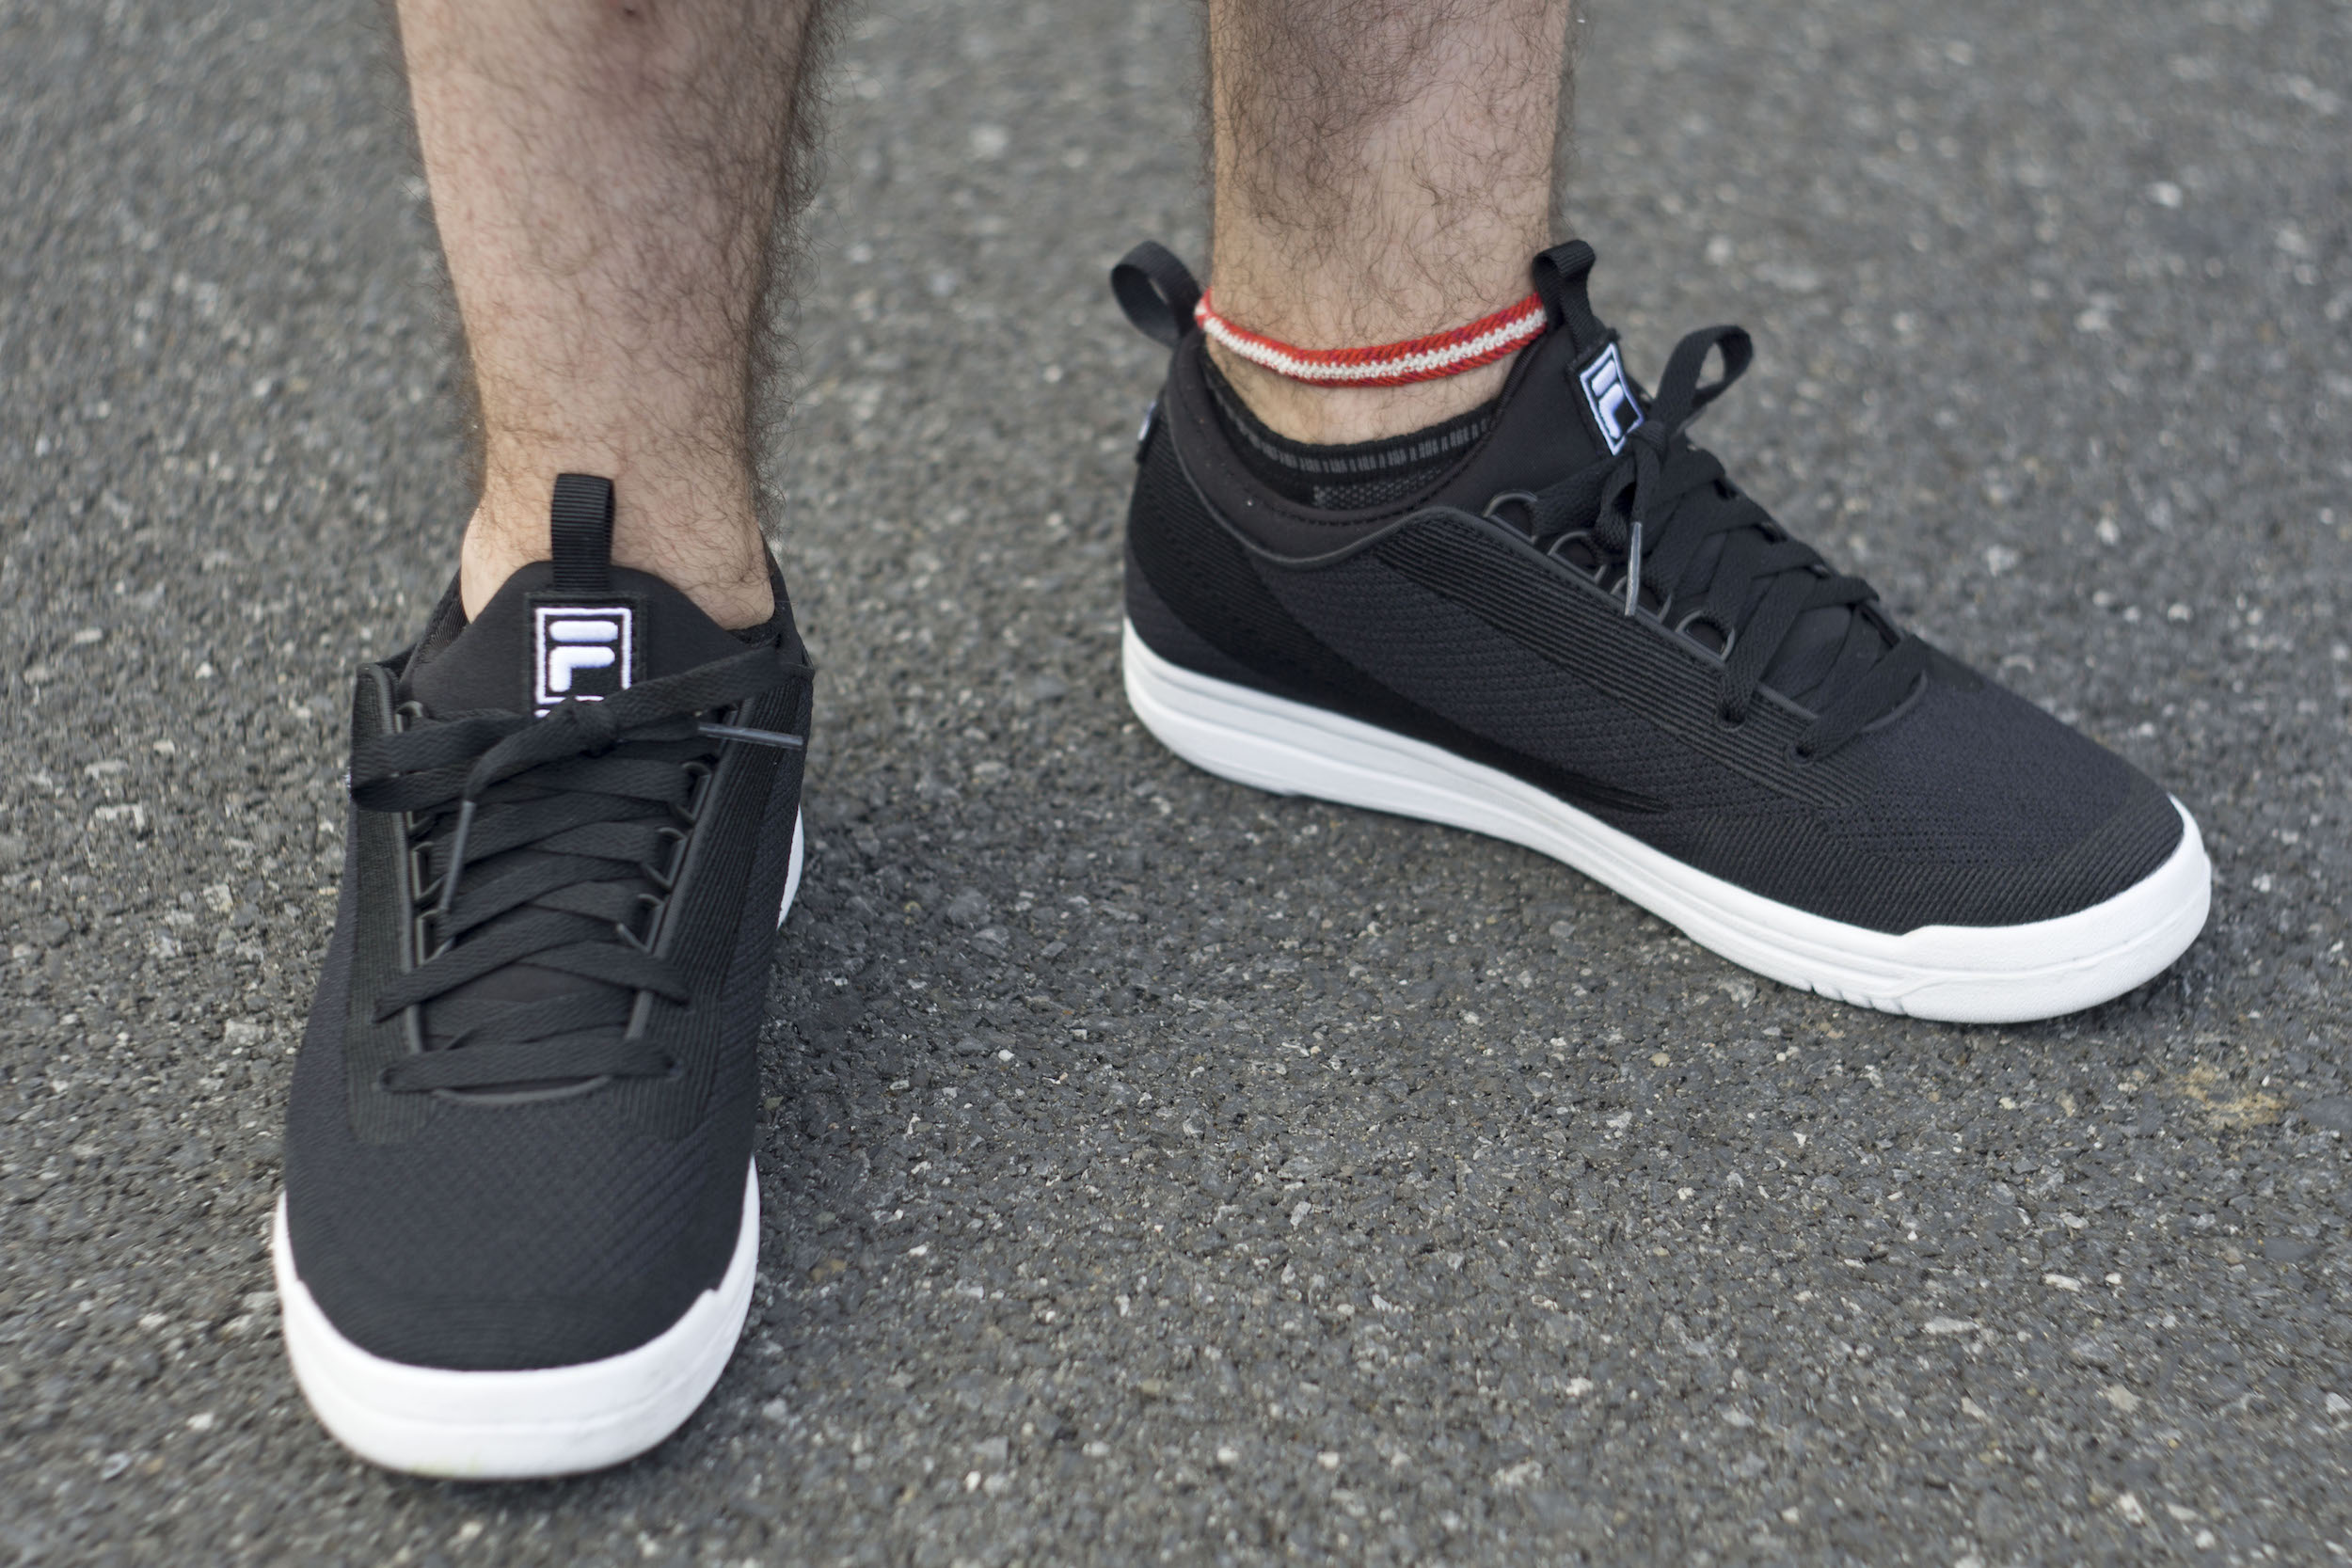 Test Shoot: FILA Original Tennis 2.0 SW A Classic Gets a